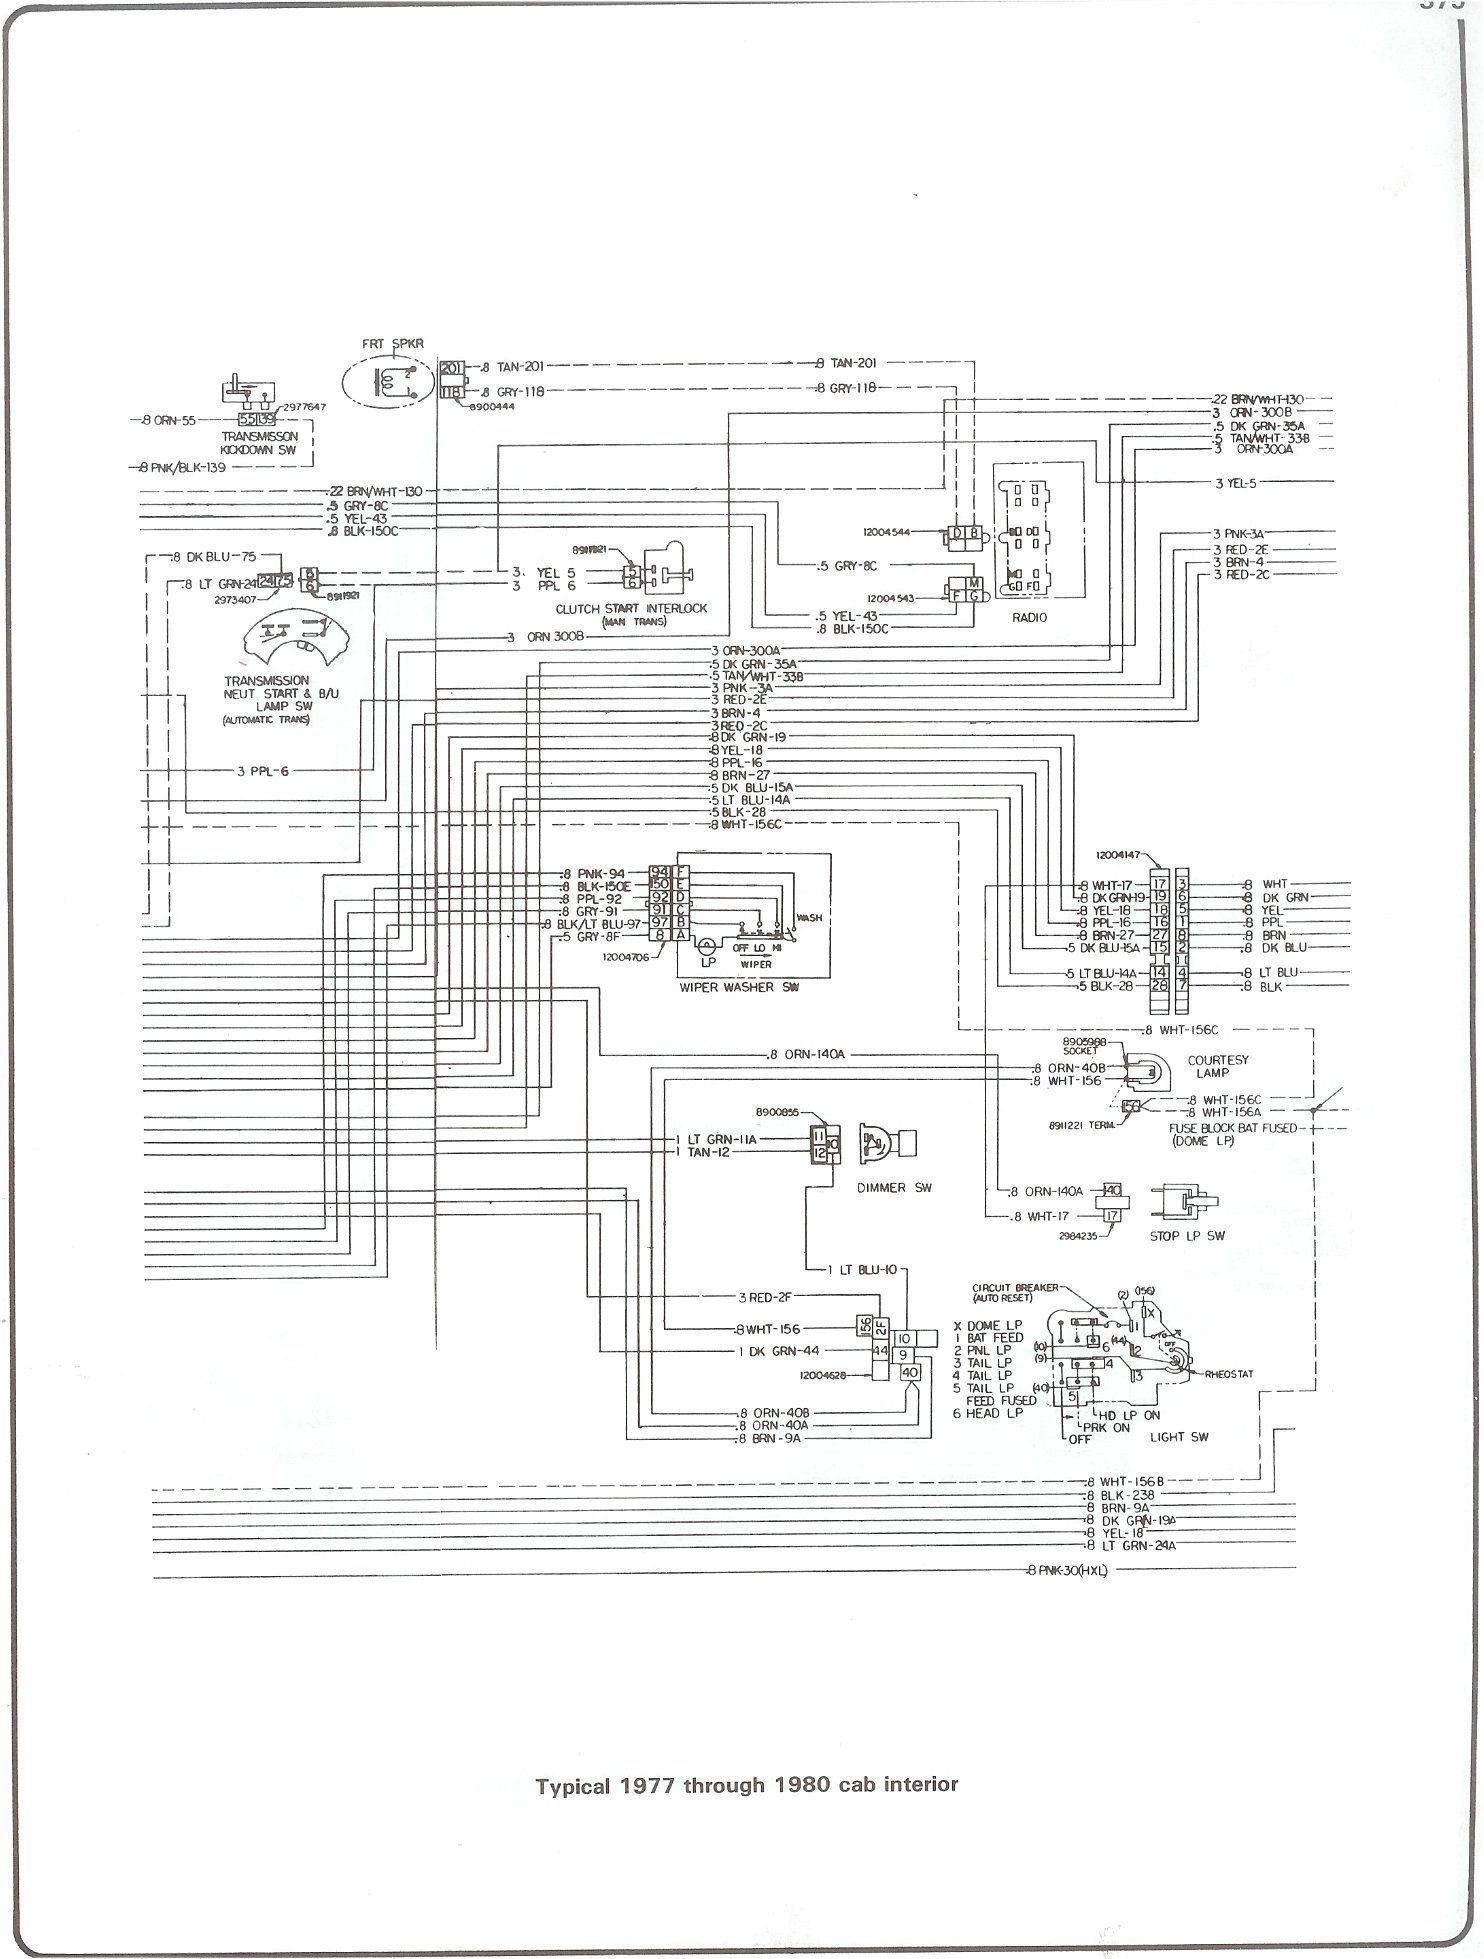 Chevy K20 Wiring Diagram Simple Guide About 1981 Jeep Cj5 4 Cyl Complete 73 87 Diagrams Rh Forum 87chevytrucks Com